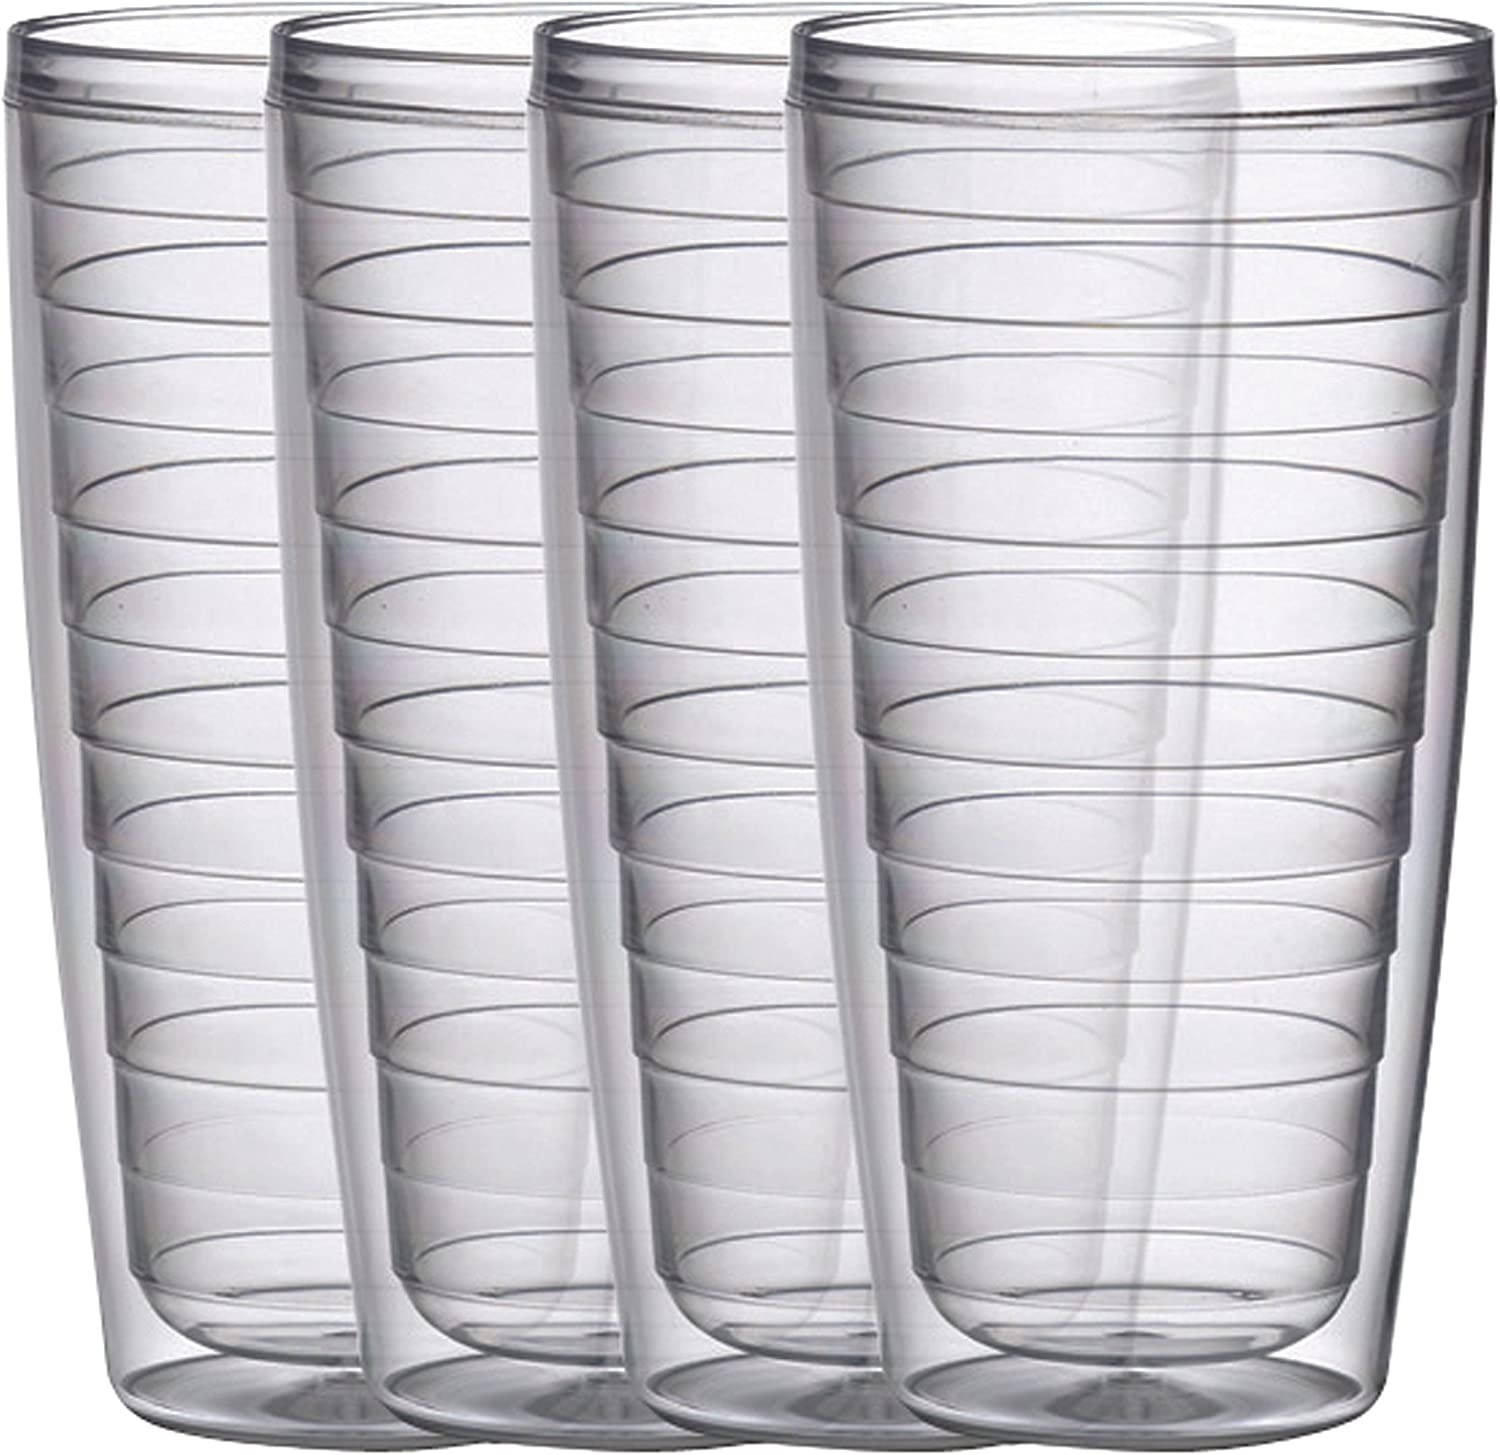 Plastic Tumblers Insulated Double Wall 24 Ounce Set Of 4 Sunset Collection